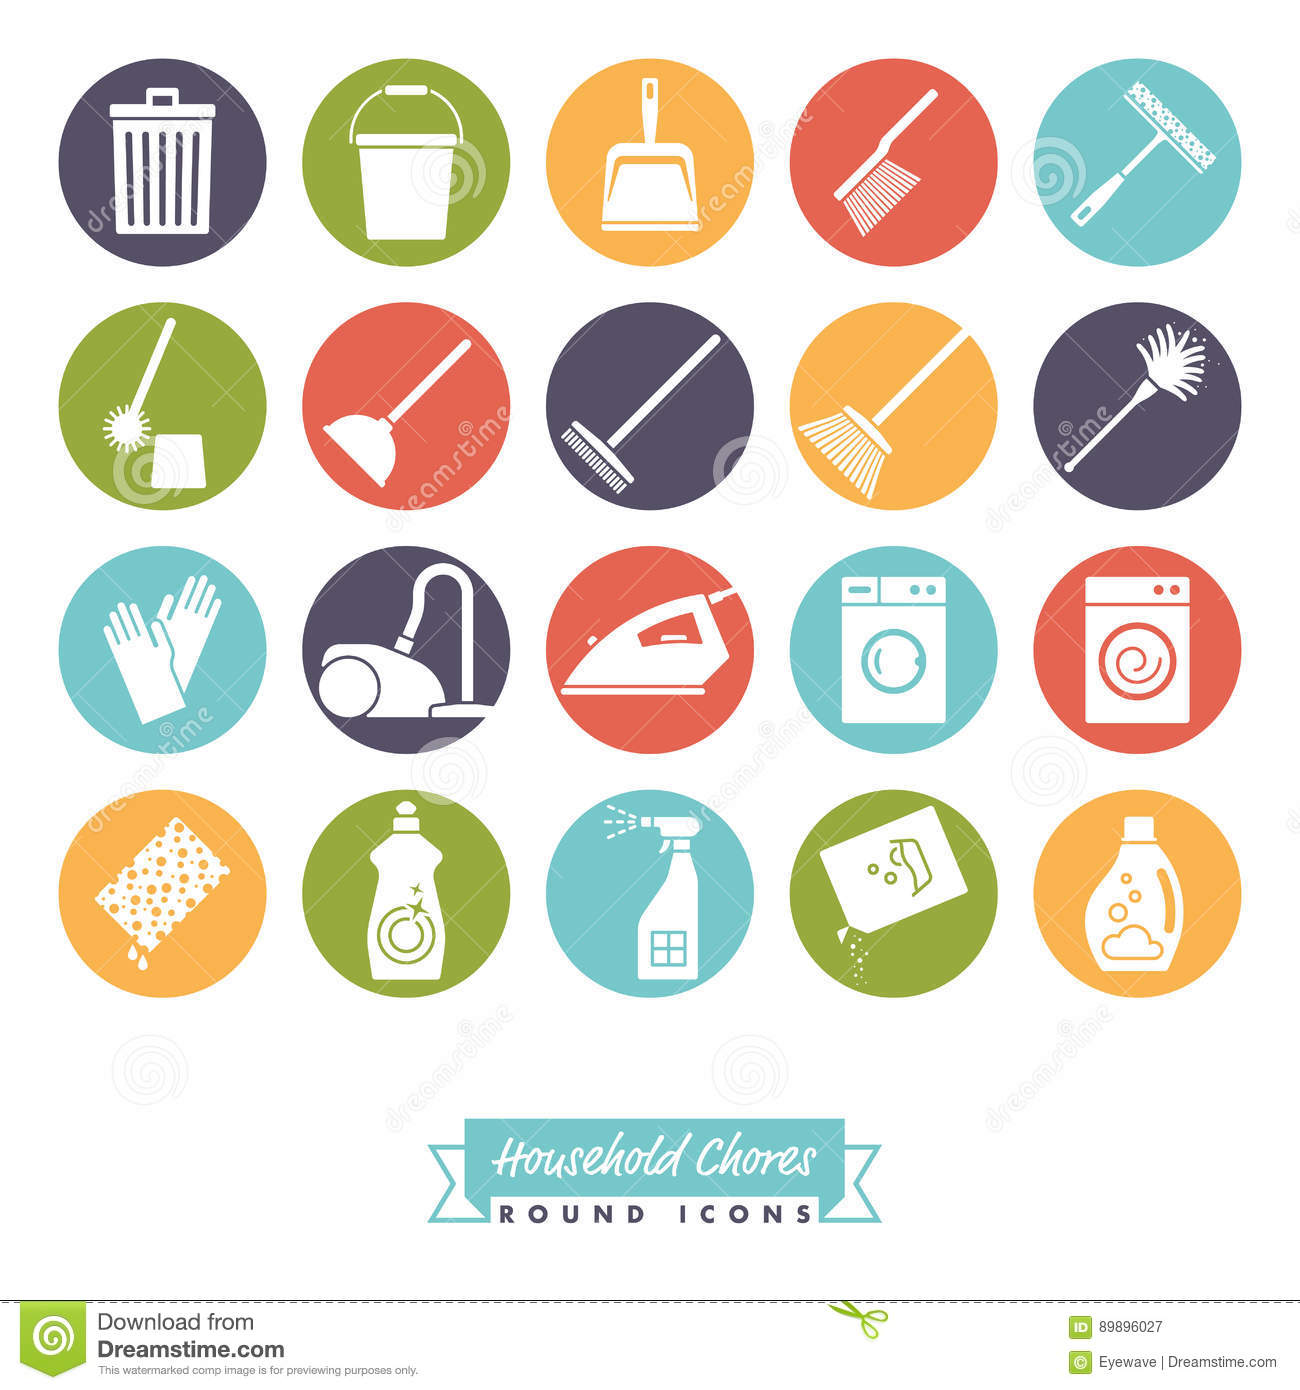 household chores round color icon set stock vector illustration of